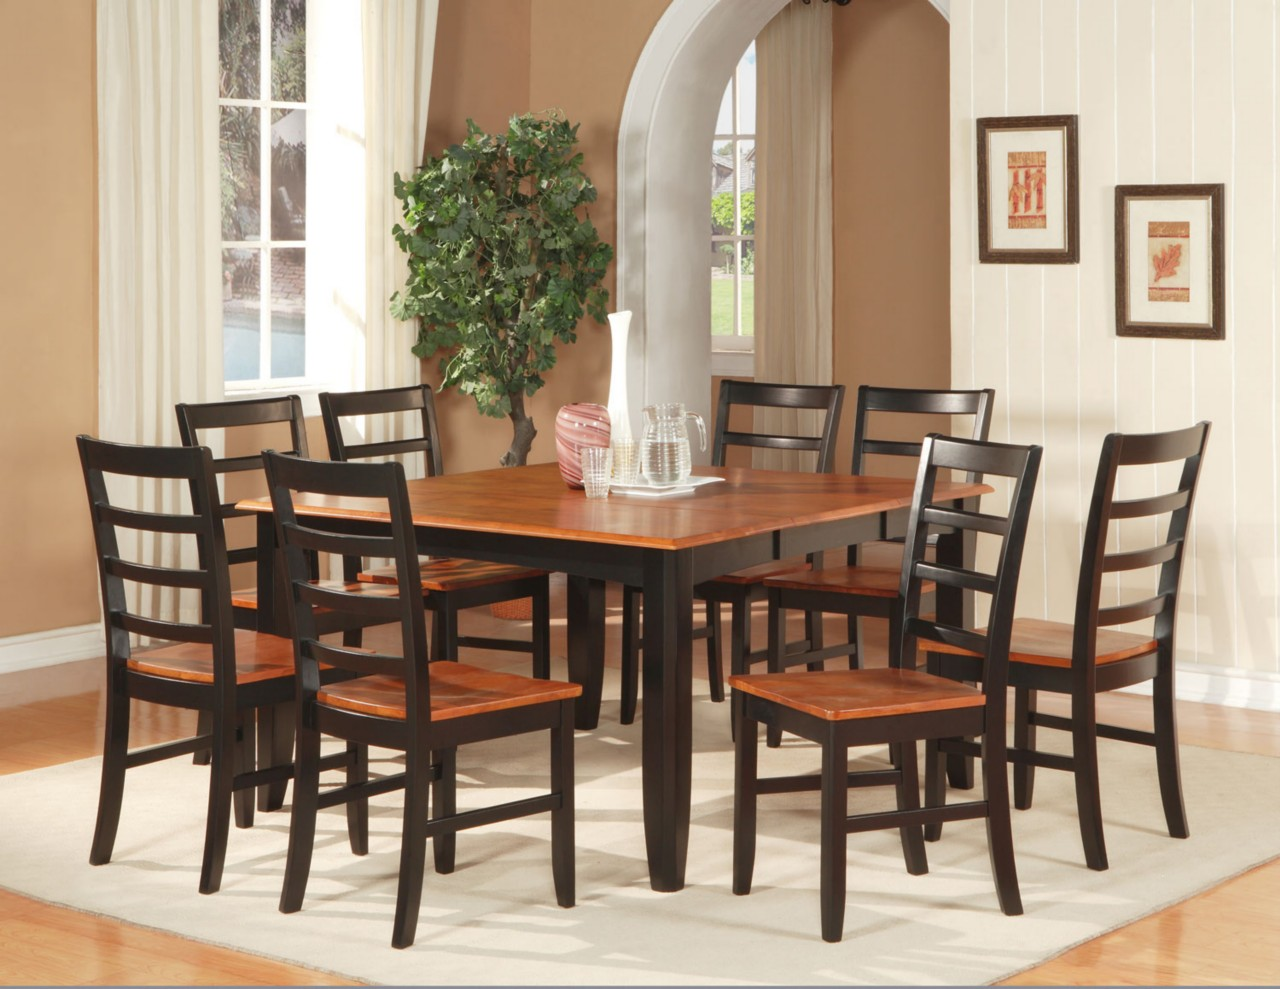 Amazing Square Dining Room Table Sets 1280 x 989 · 216 kB · jpeg